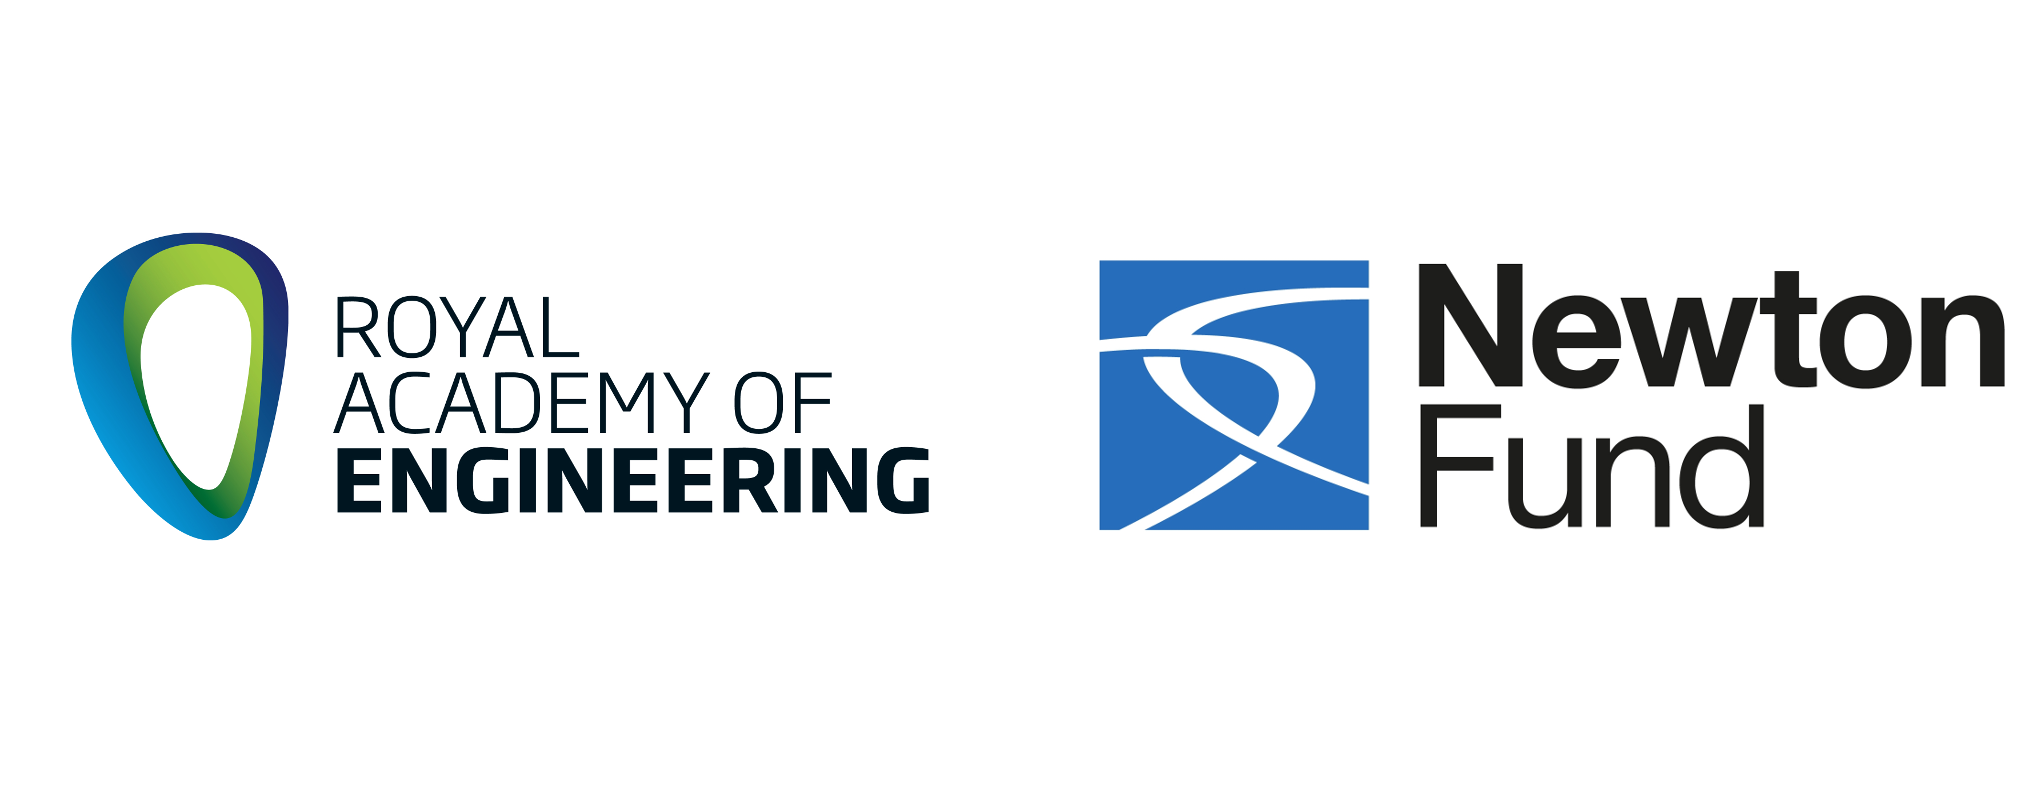 Royal Academy of Engineering and Newton Fund